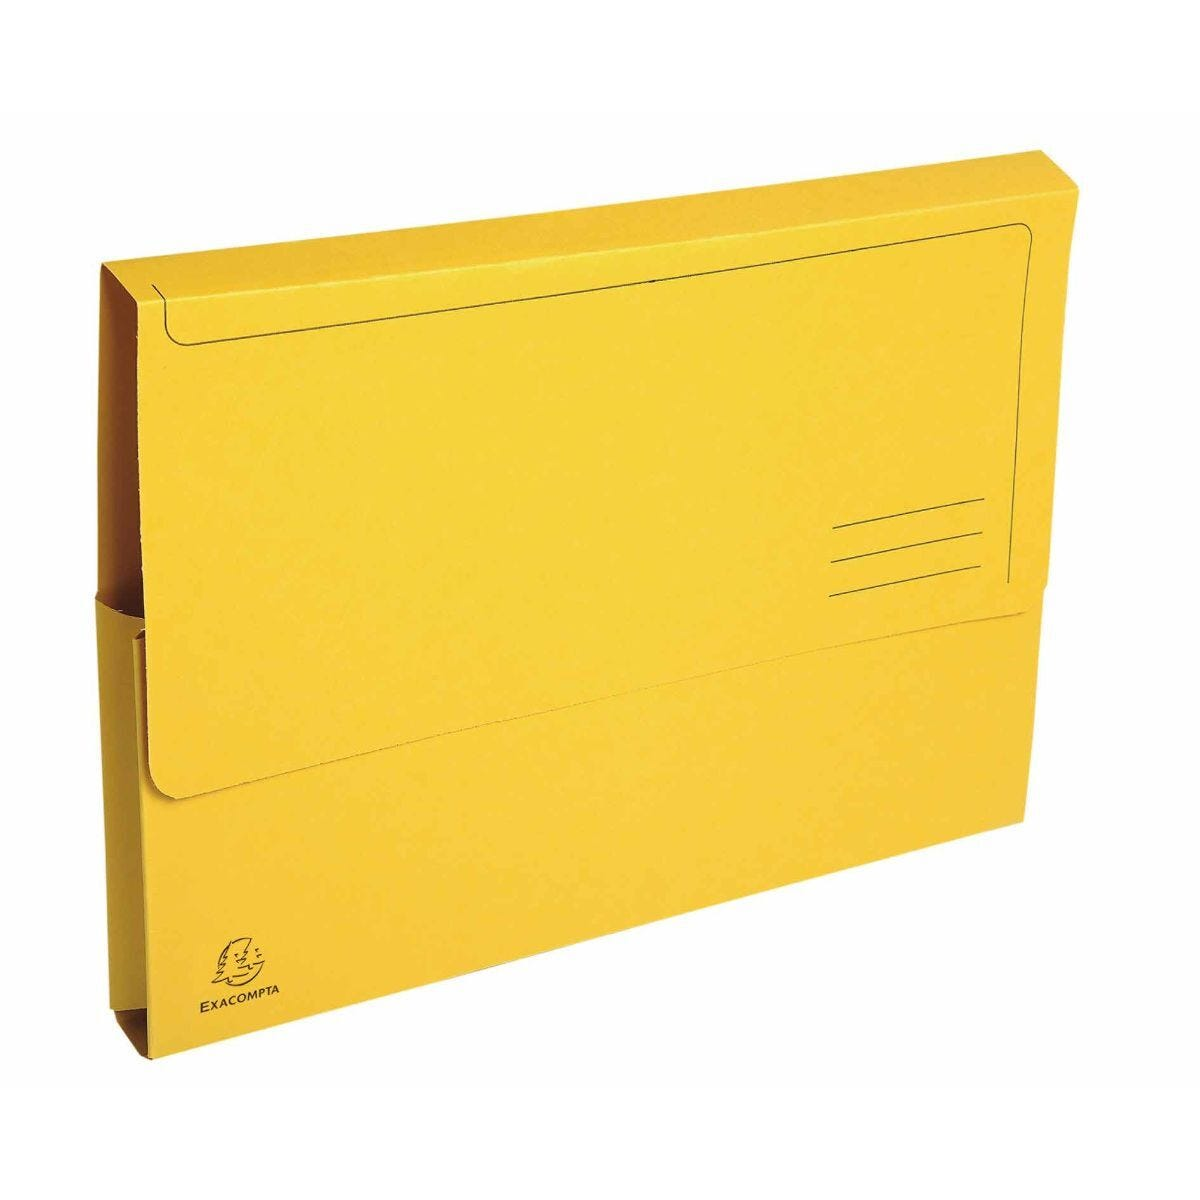 Exacompta Forever Document Wallets A4 2 Packs of 50 290gsm Yellow